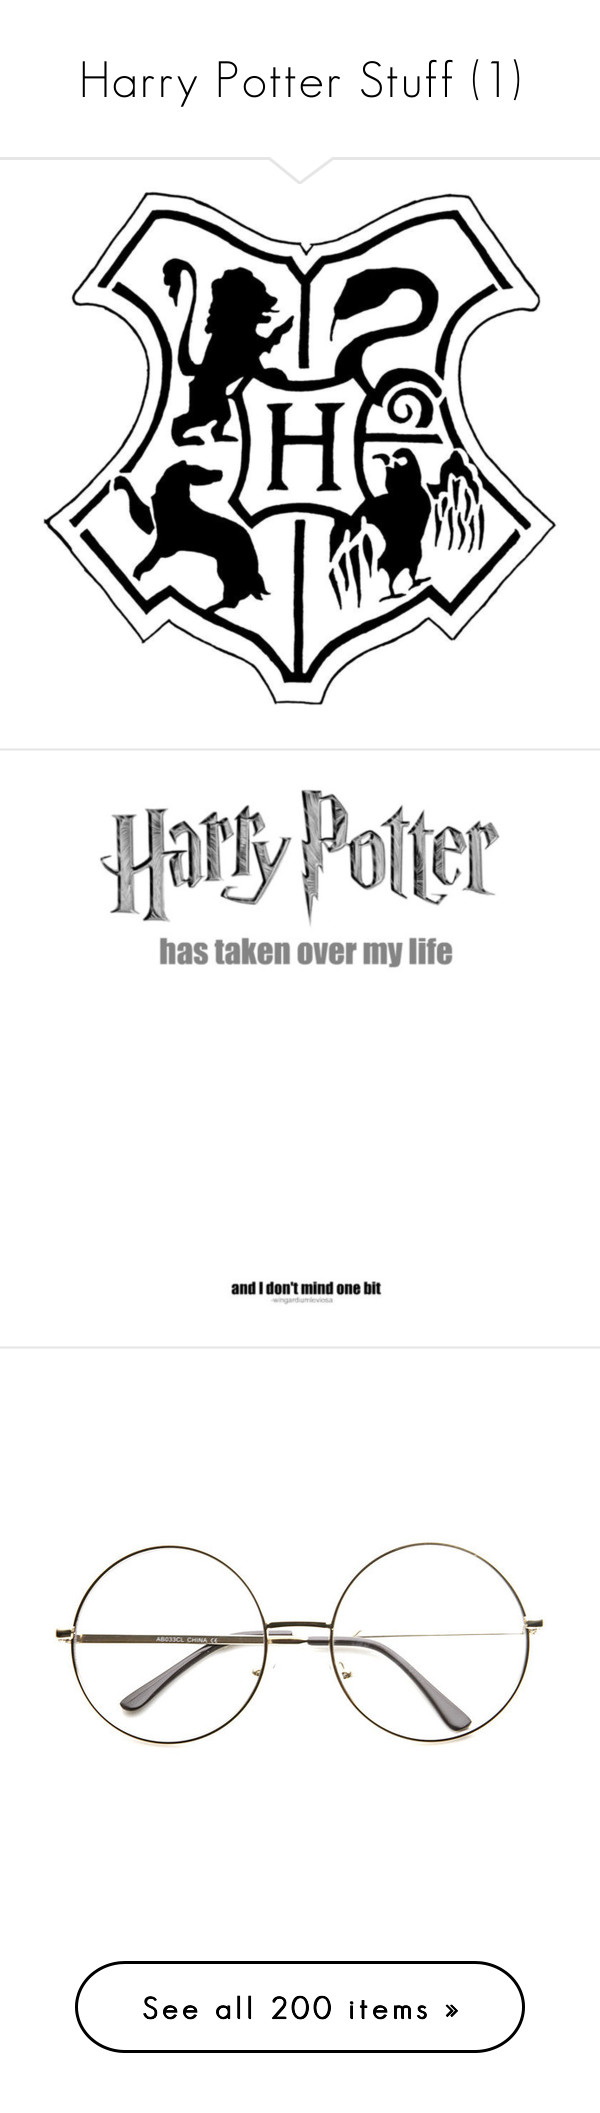 """Harry Potter Stuff (1)"" by smokenhothyde ❤ liked on Polyvore featuring harry potter, fillers, hogwarts, doodles, phrase, quotes, saying, text, sayings and accessories"